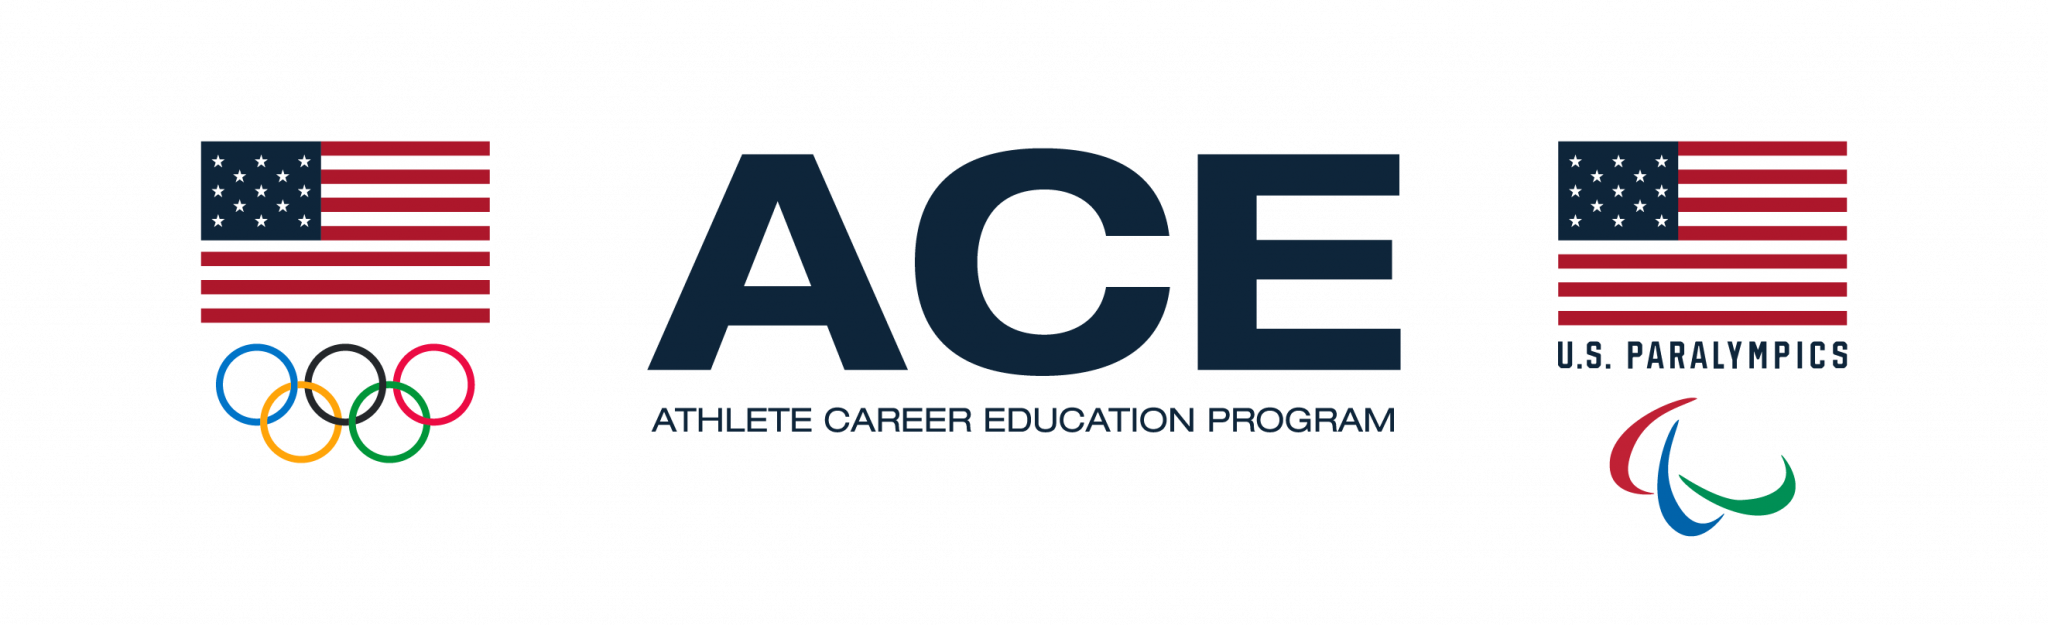 The United States Olympic Committee's Athlete Career and Education Programme has given out sizeable athlete tuition grants ©ACE